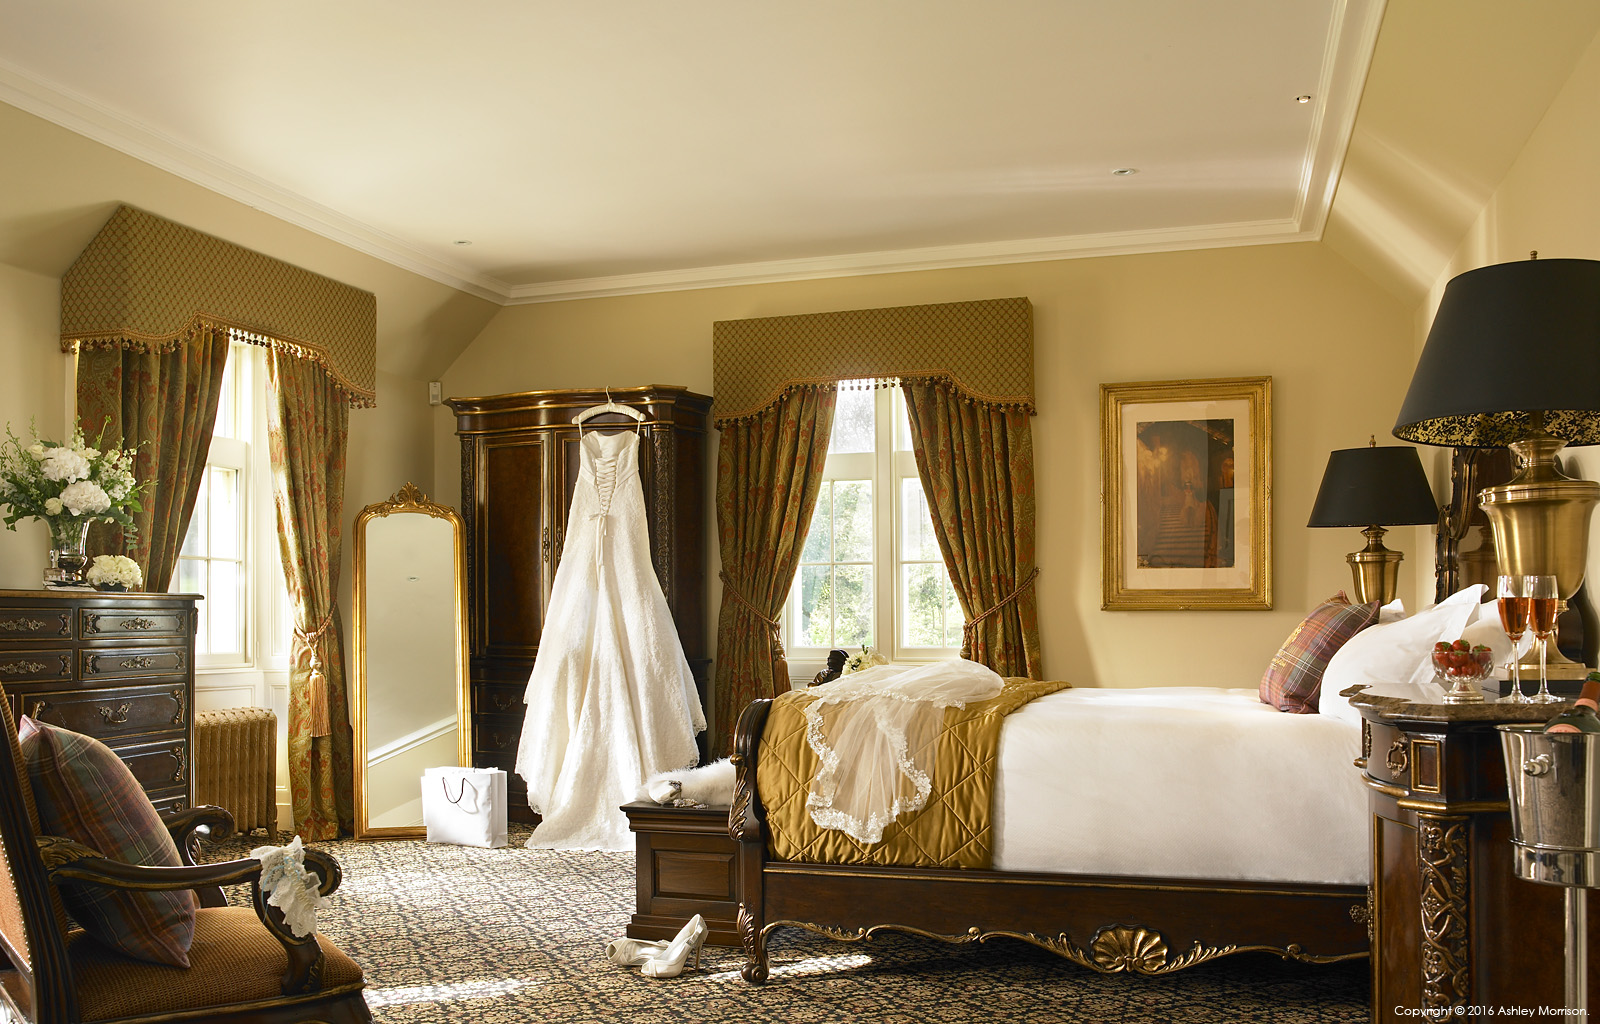 The Bridal bedroom suite at the Trump International Golf Links Hotel near Aberdeen in Scotland.